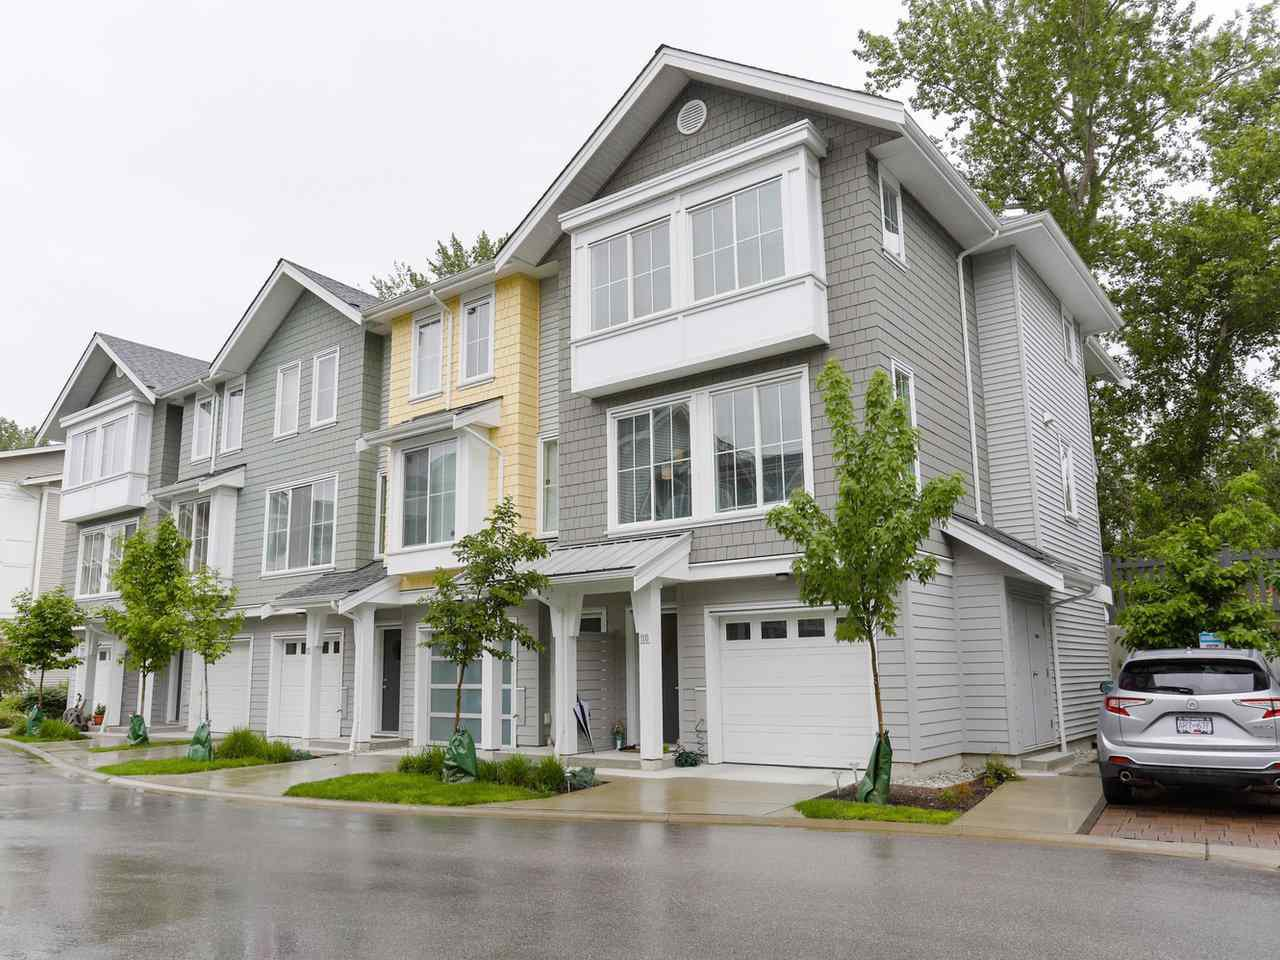 """Main Photo: 110 5550 ADMIRAL Way in Ladner: Neilsen Grove Townhouse for sale in """"FAIRWYNDS AT HAMPTON COVE"""" : MLS®# R2466448"""